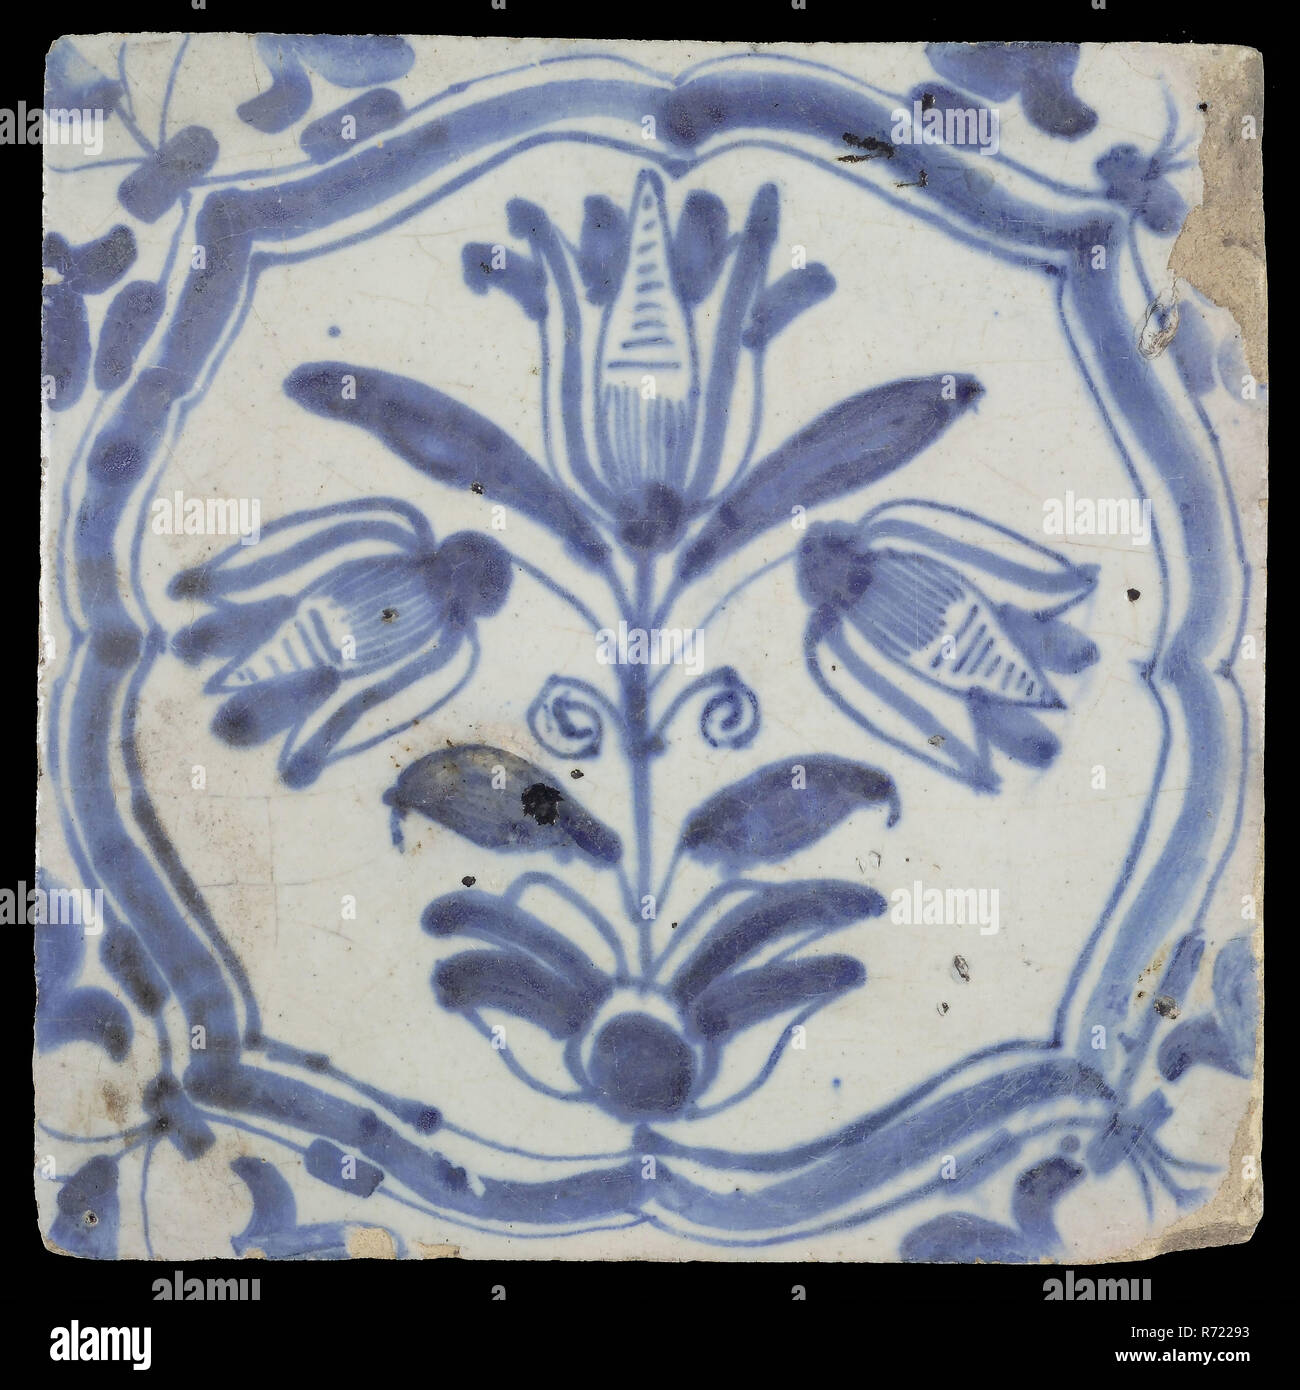 Flower tiling with three-tier in braces, blue decor on white ground, angle filling voluten, wall tile tile sculpture ceramic earthenware glaze tin glaze, in form made baked glazed painted baked Wall tile with blue decor on white background. Flower Tile with three-tiered tulip in brace frame The glaze layer has probably become dull by cleaning with corrosive acid. brown-colored shard. Scraped earthenware. Corner filling volute Slightly slanted sides of indigenous pottery - Stock Image